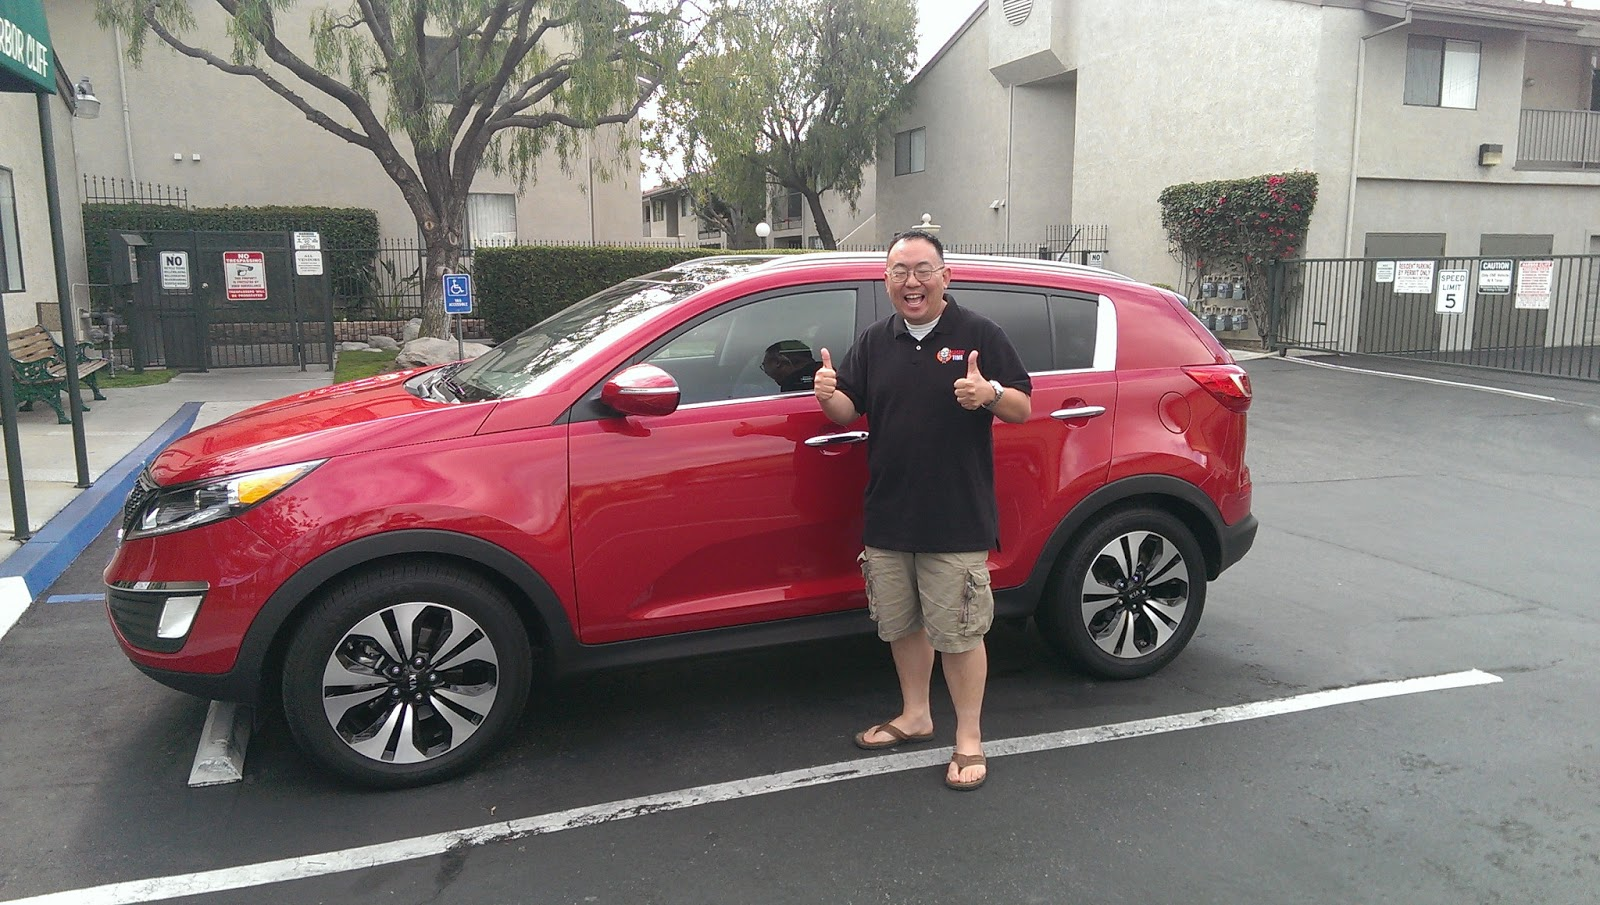 Vehicle Review: 2013 Kia Sportage!